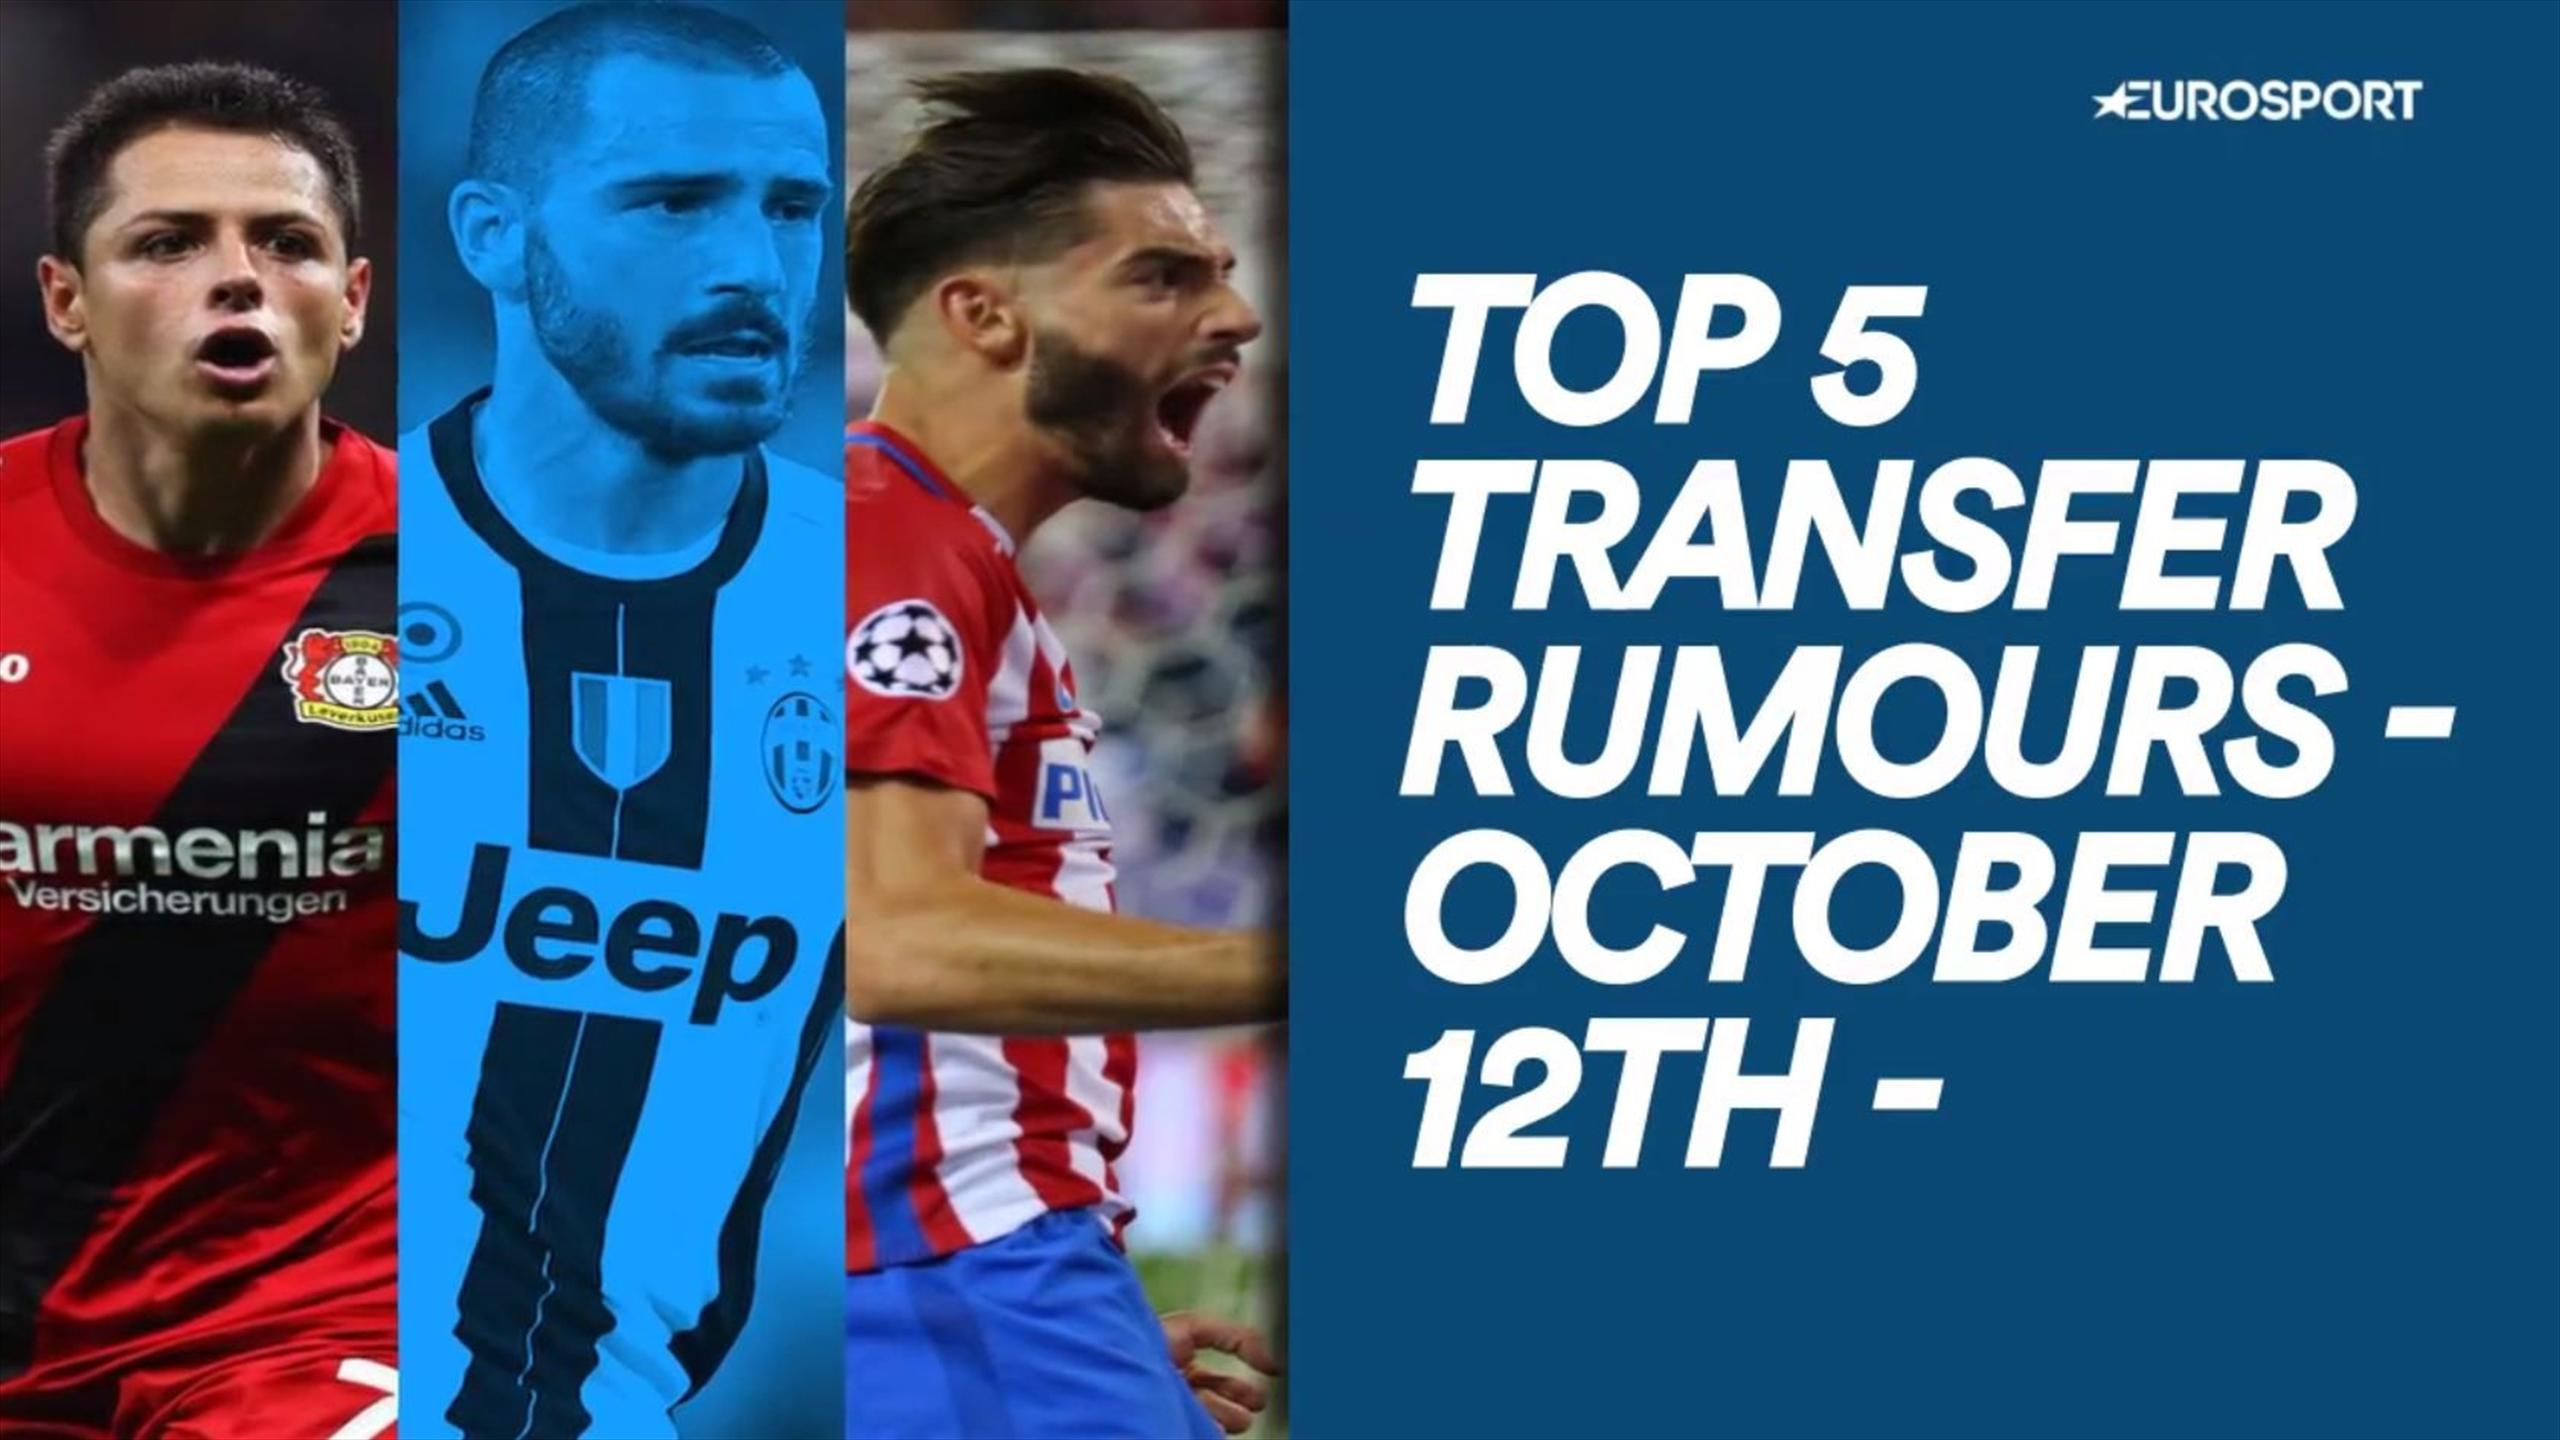 Top 5 Transfer Rumours: Bonucci rejects City for smaller Juve contract renewal